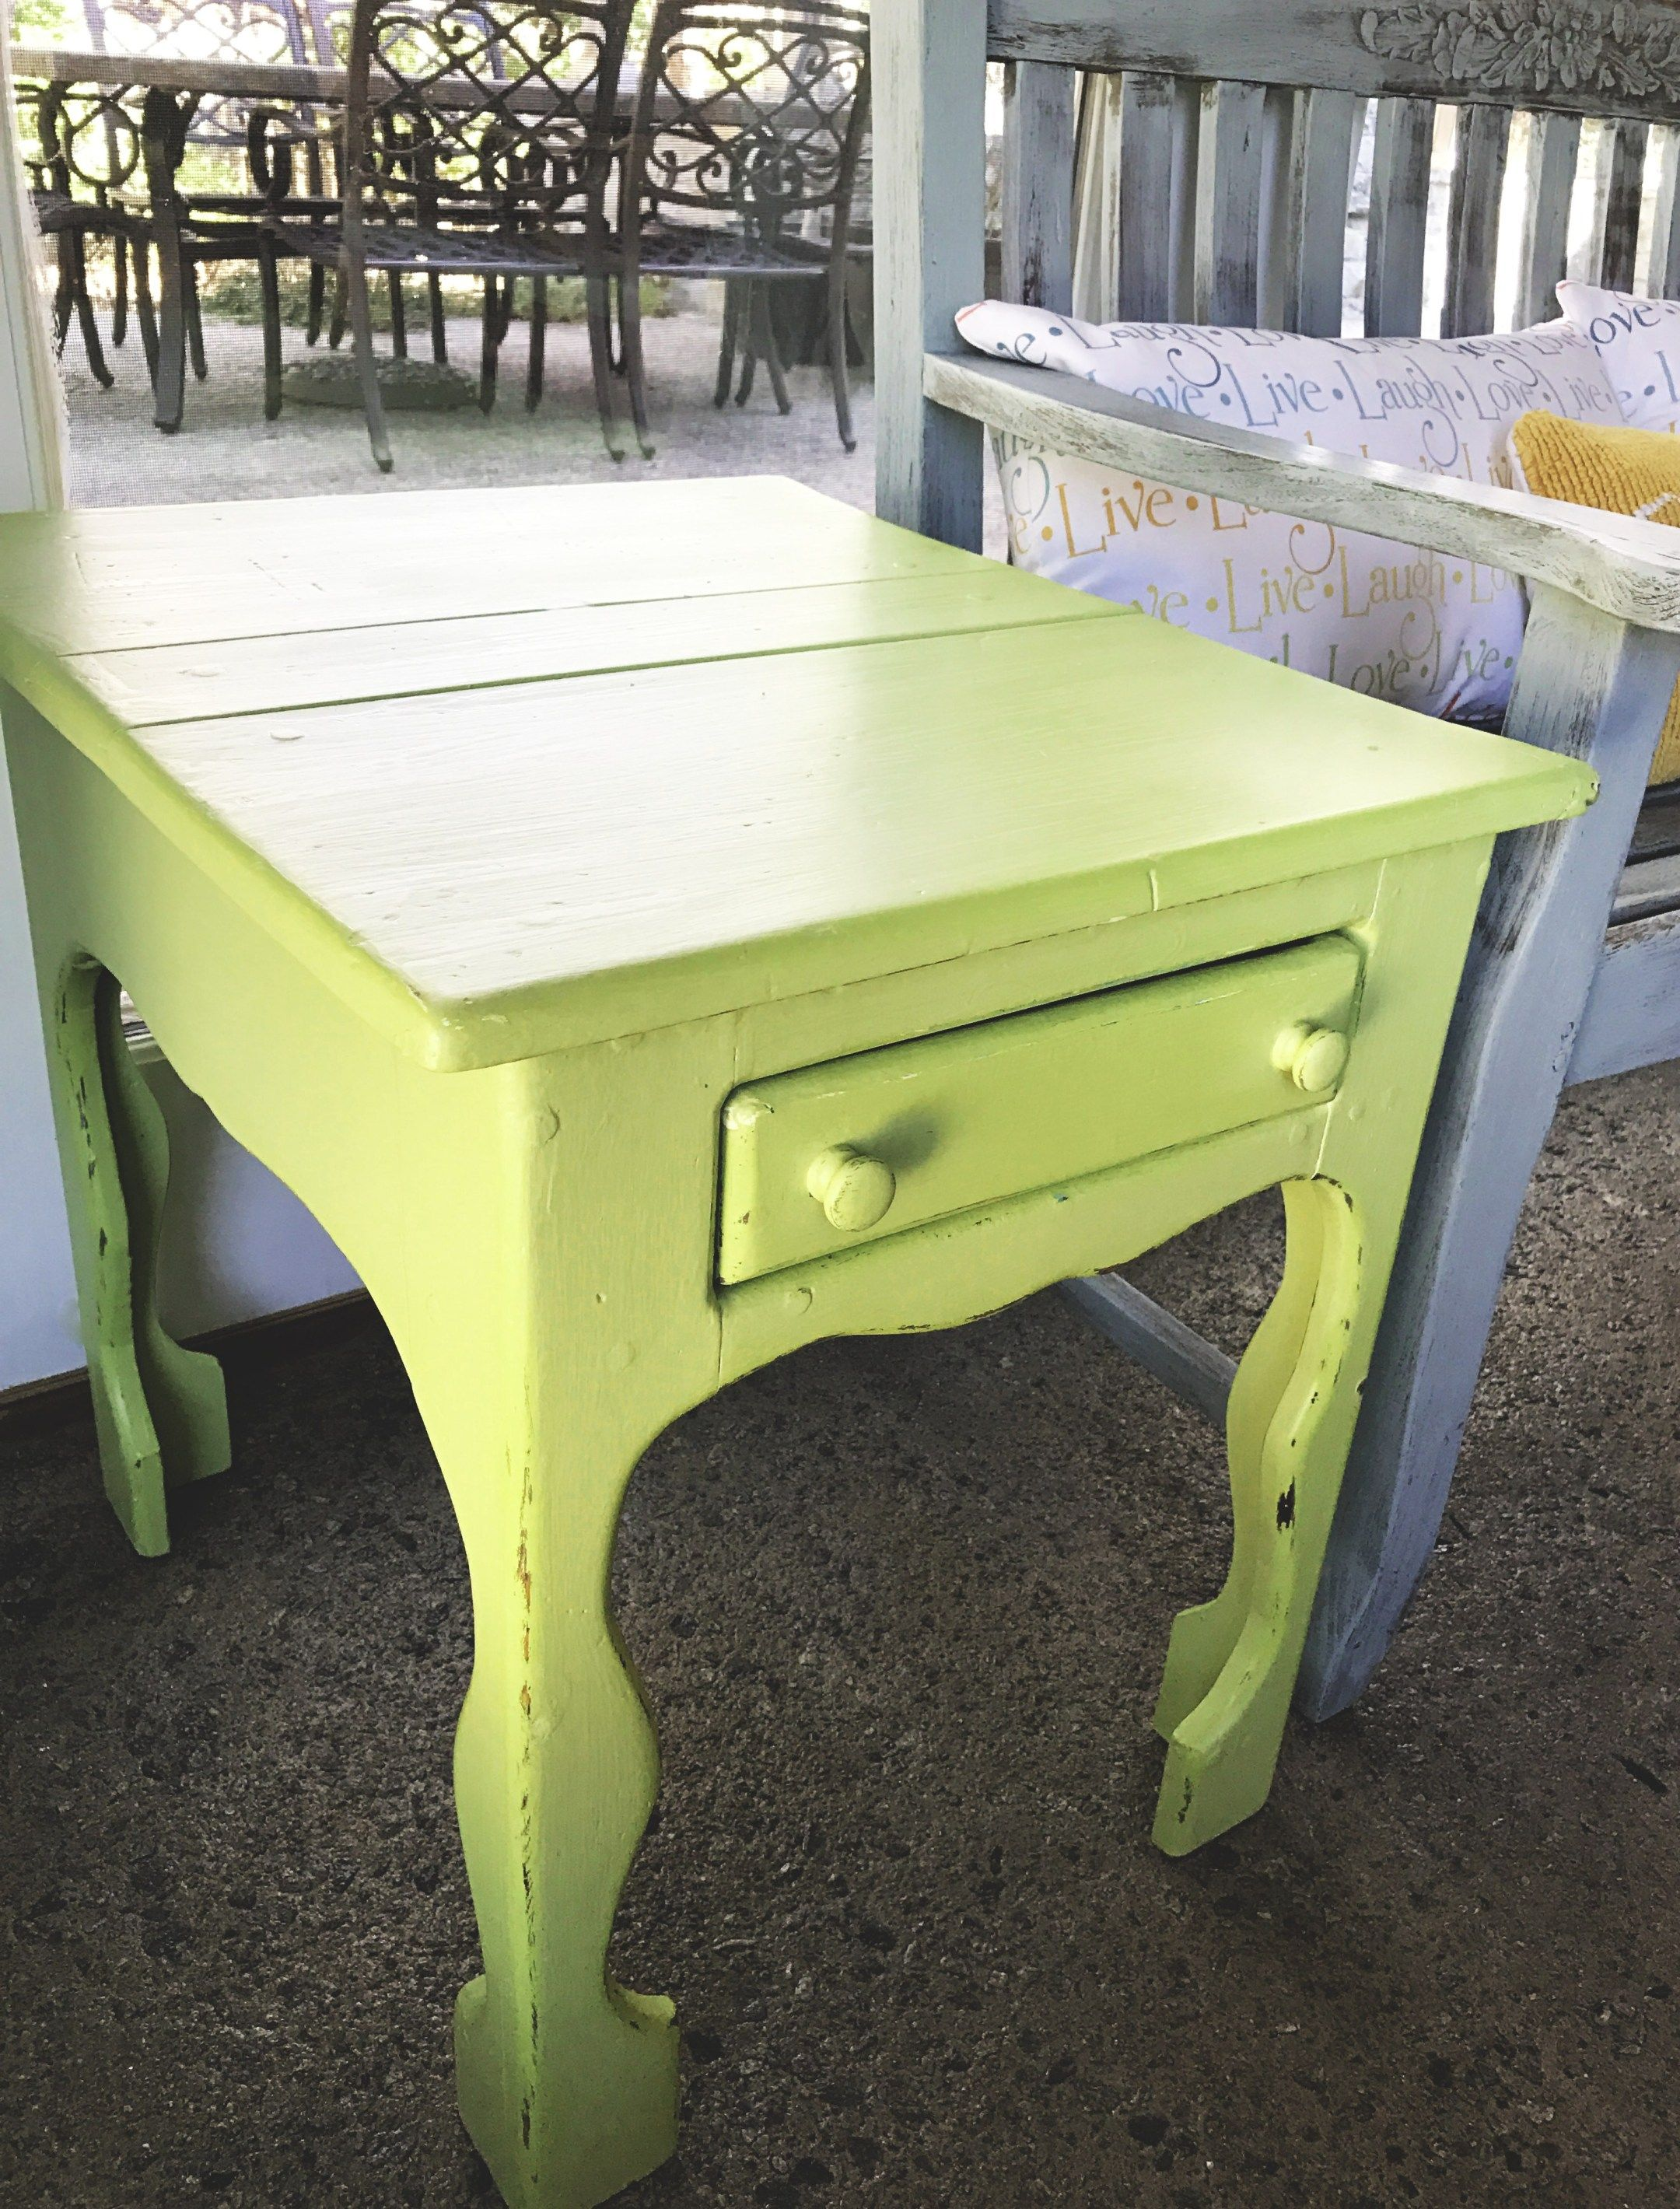 How to Paint and Protect Outdoor Wood Furniture - The ...